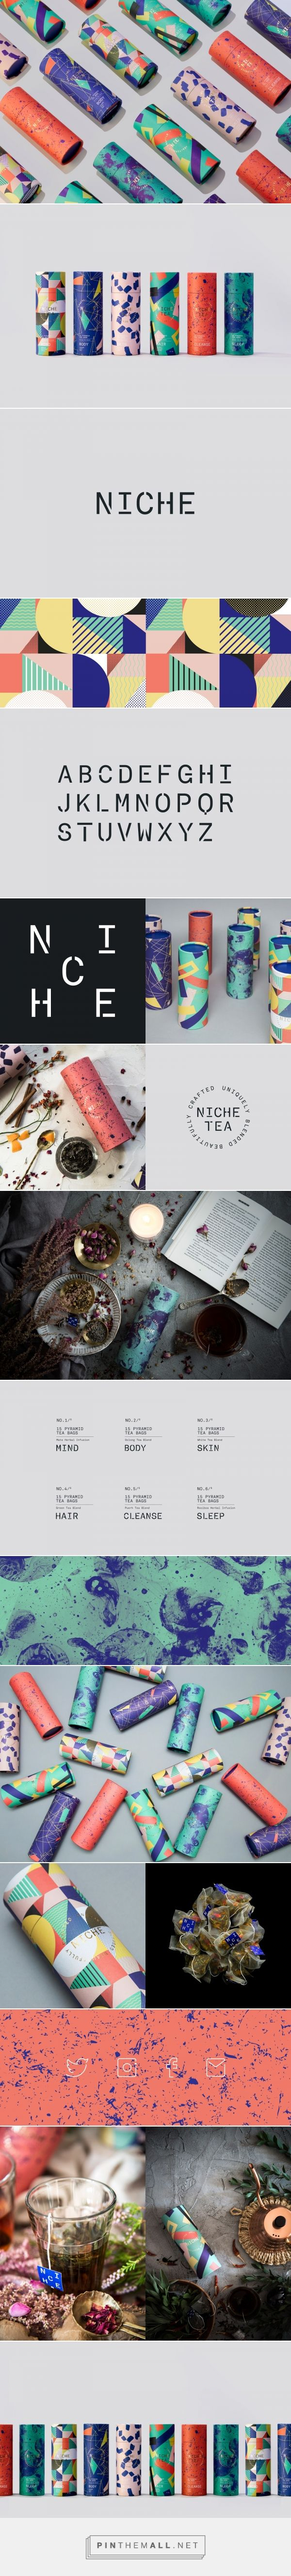 Niche Tea packaging design by IWANT design - http://www.packagingoftheworld.com/2017/03/niche-tea.html